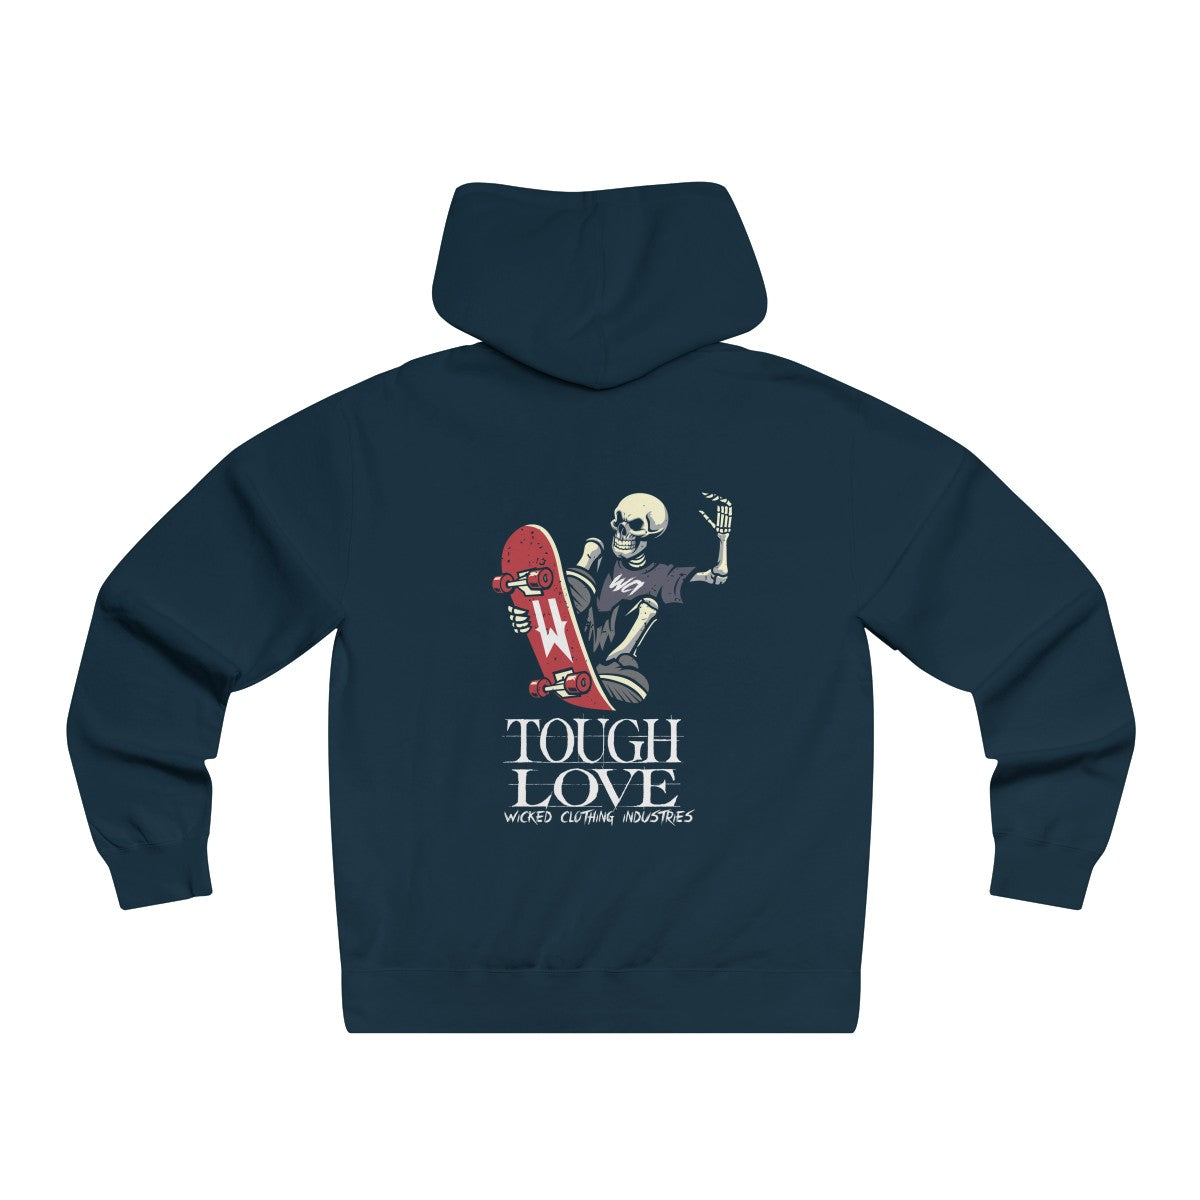 Tough Love/Men's Lightweight Pullover Hooded Sweatshirt